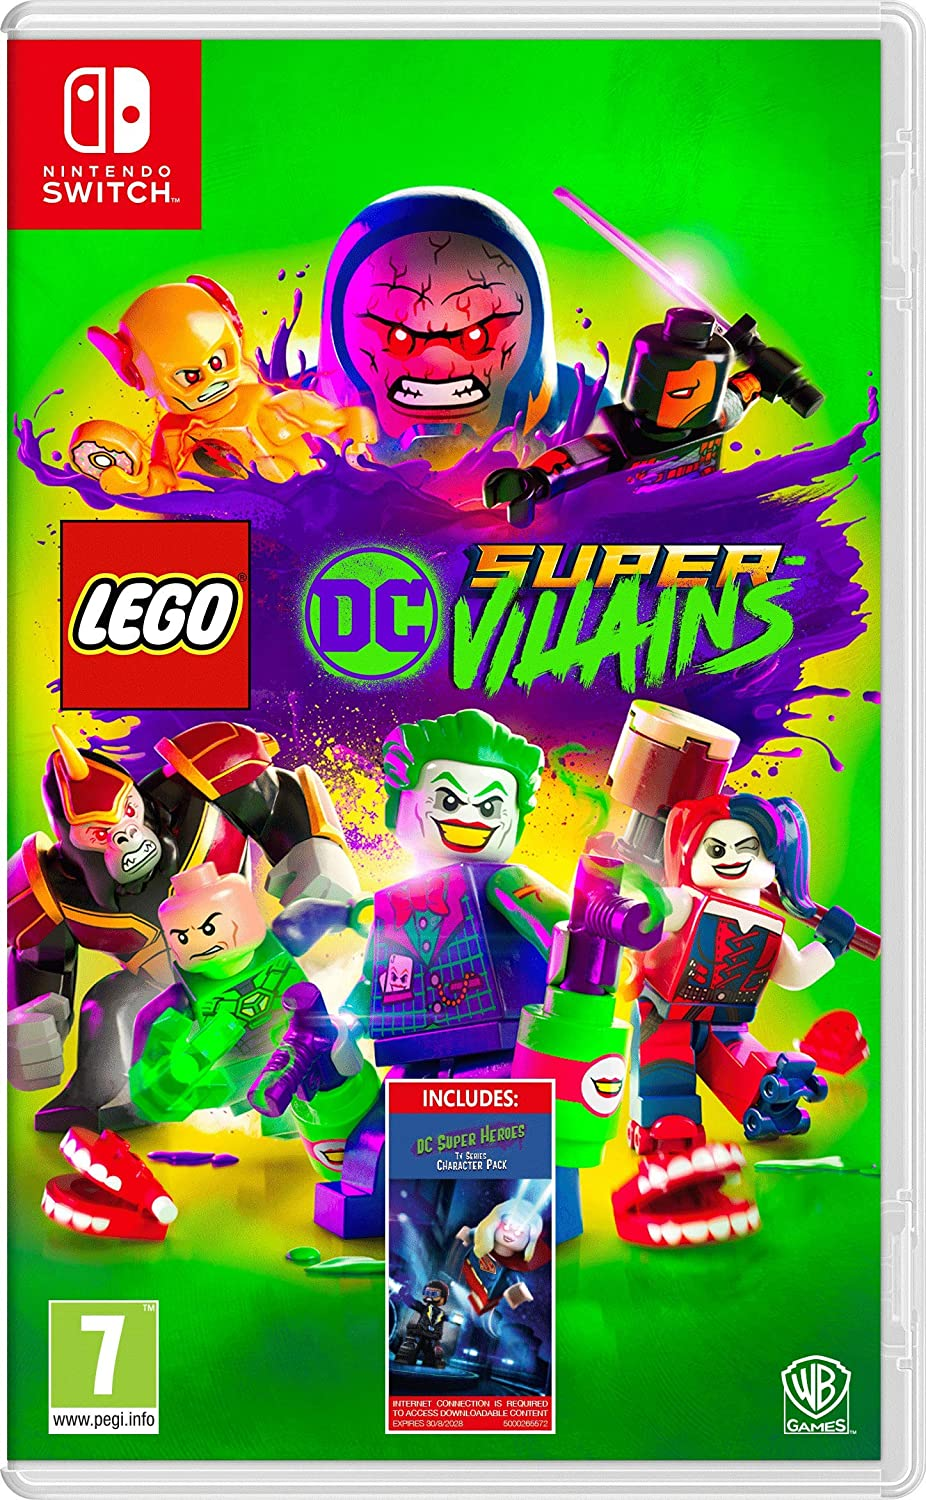 Lego DC Super-Villains - Amazon.co.UK DLC Exclusive - Nintendo ...